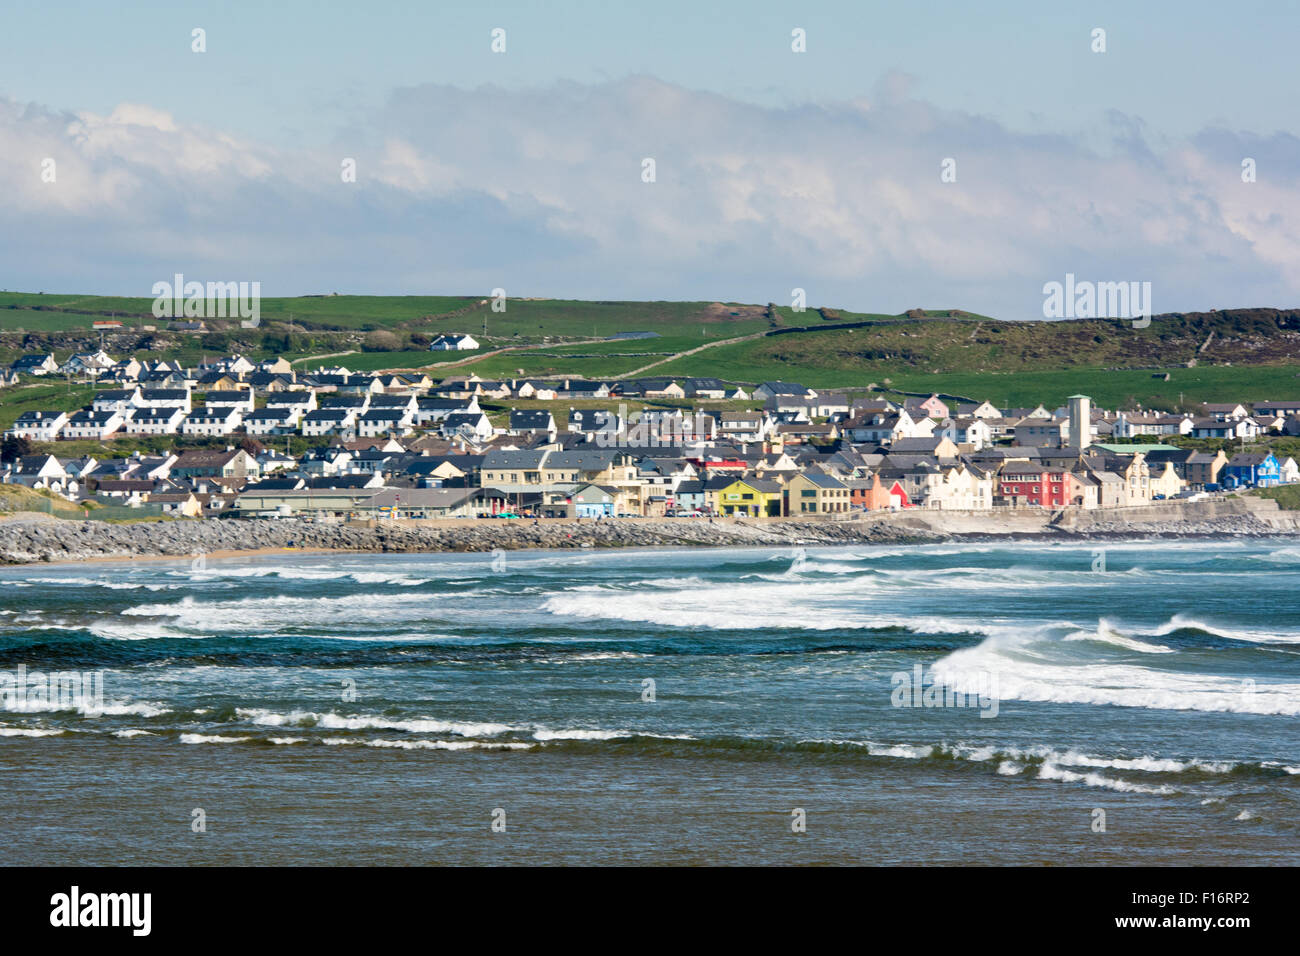 Waves in the Bay at the Town of Lahinch in County Clare along the Wild Atlantic Way on the West Coast of Ireland - Stock Image